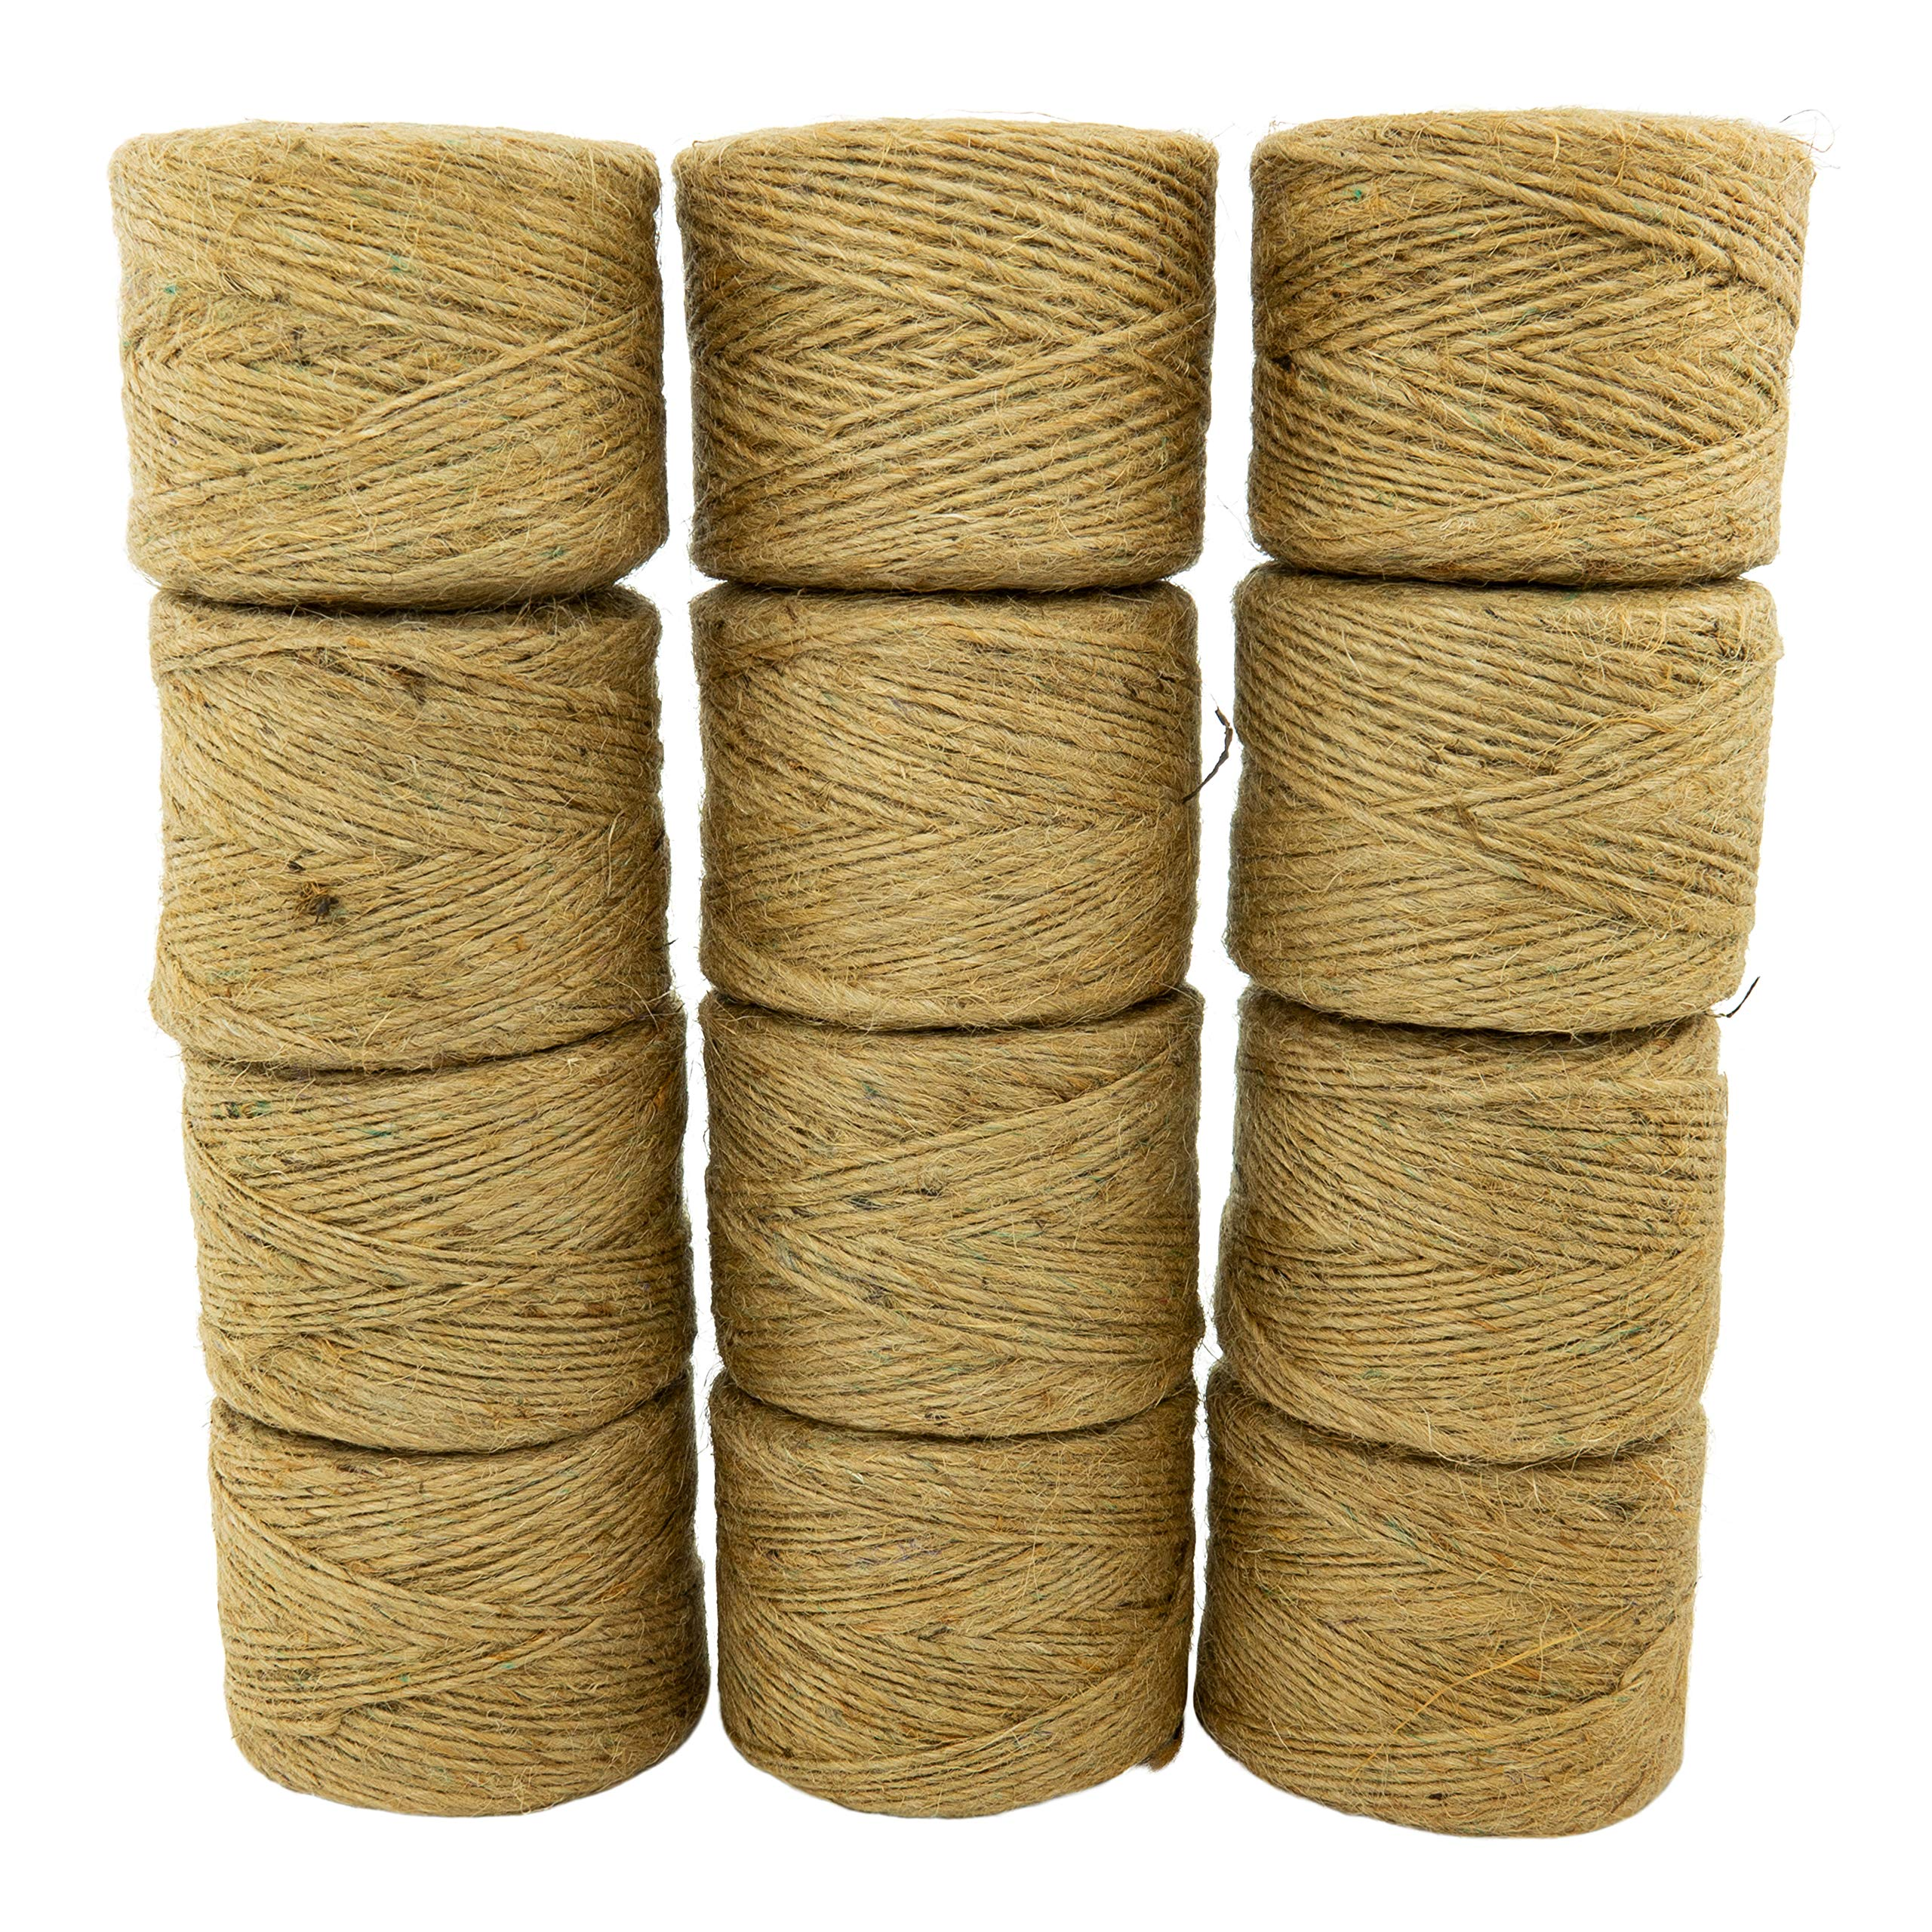 Jute Twine (12 Pack) - SGT KNOTS - 100% All-Natural Jute Fibers - Emergency Fire Starter String - All-Purpose Crafting Twine - for Home Improvement, Gardening, Camping, DIY Projects, More (285 feet) by SGT KNOTS